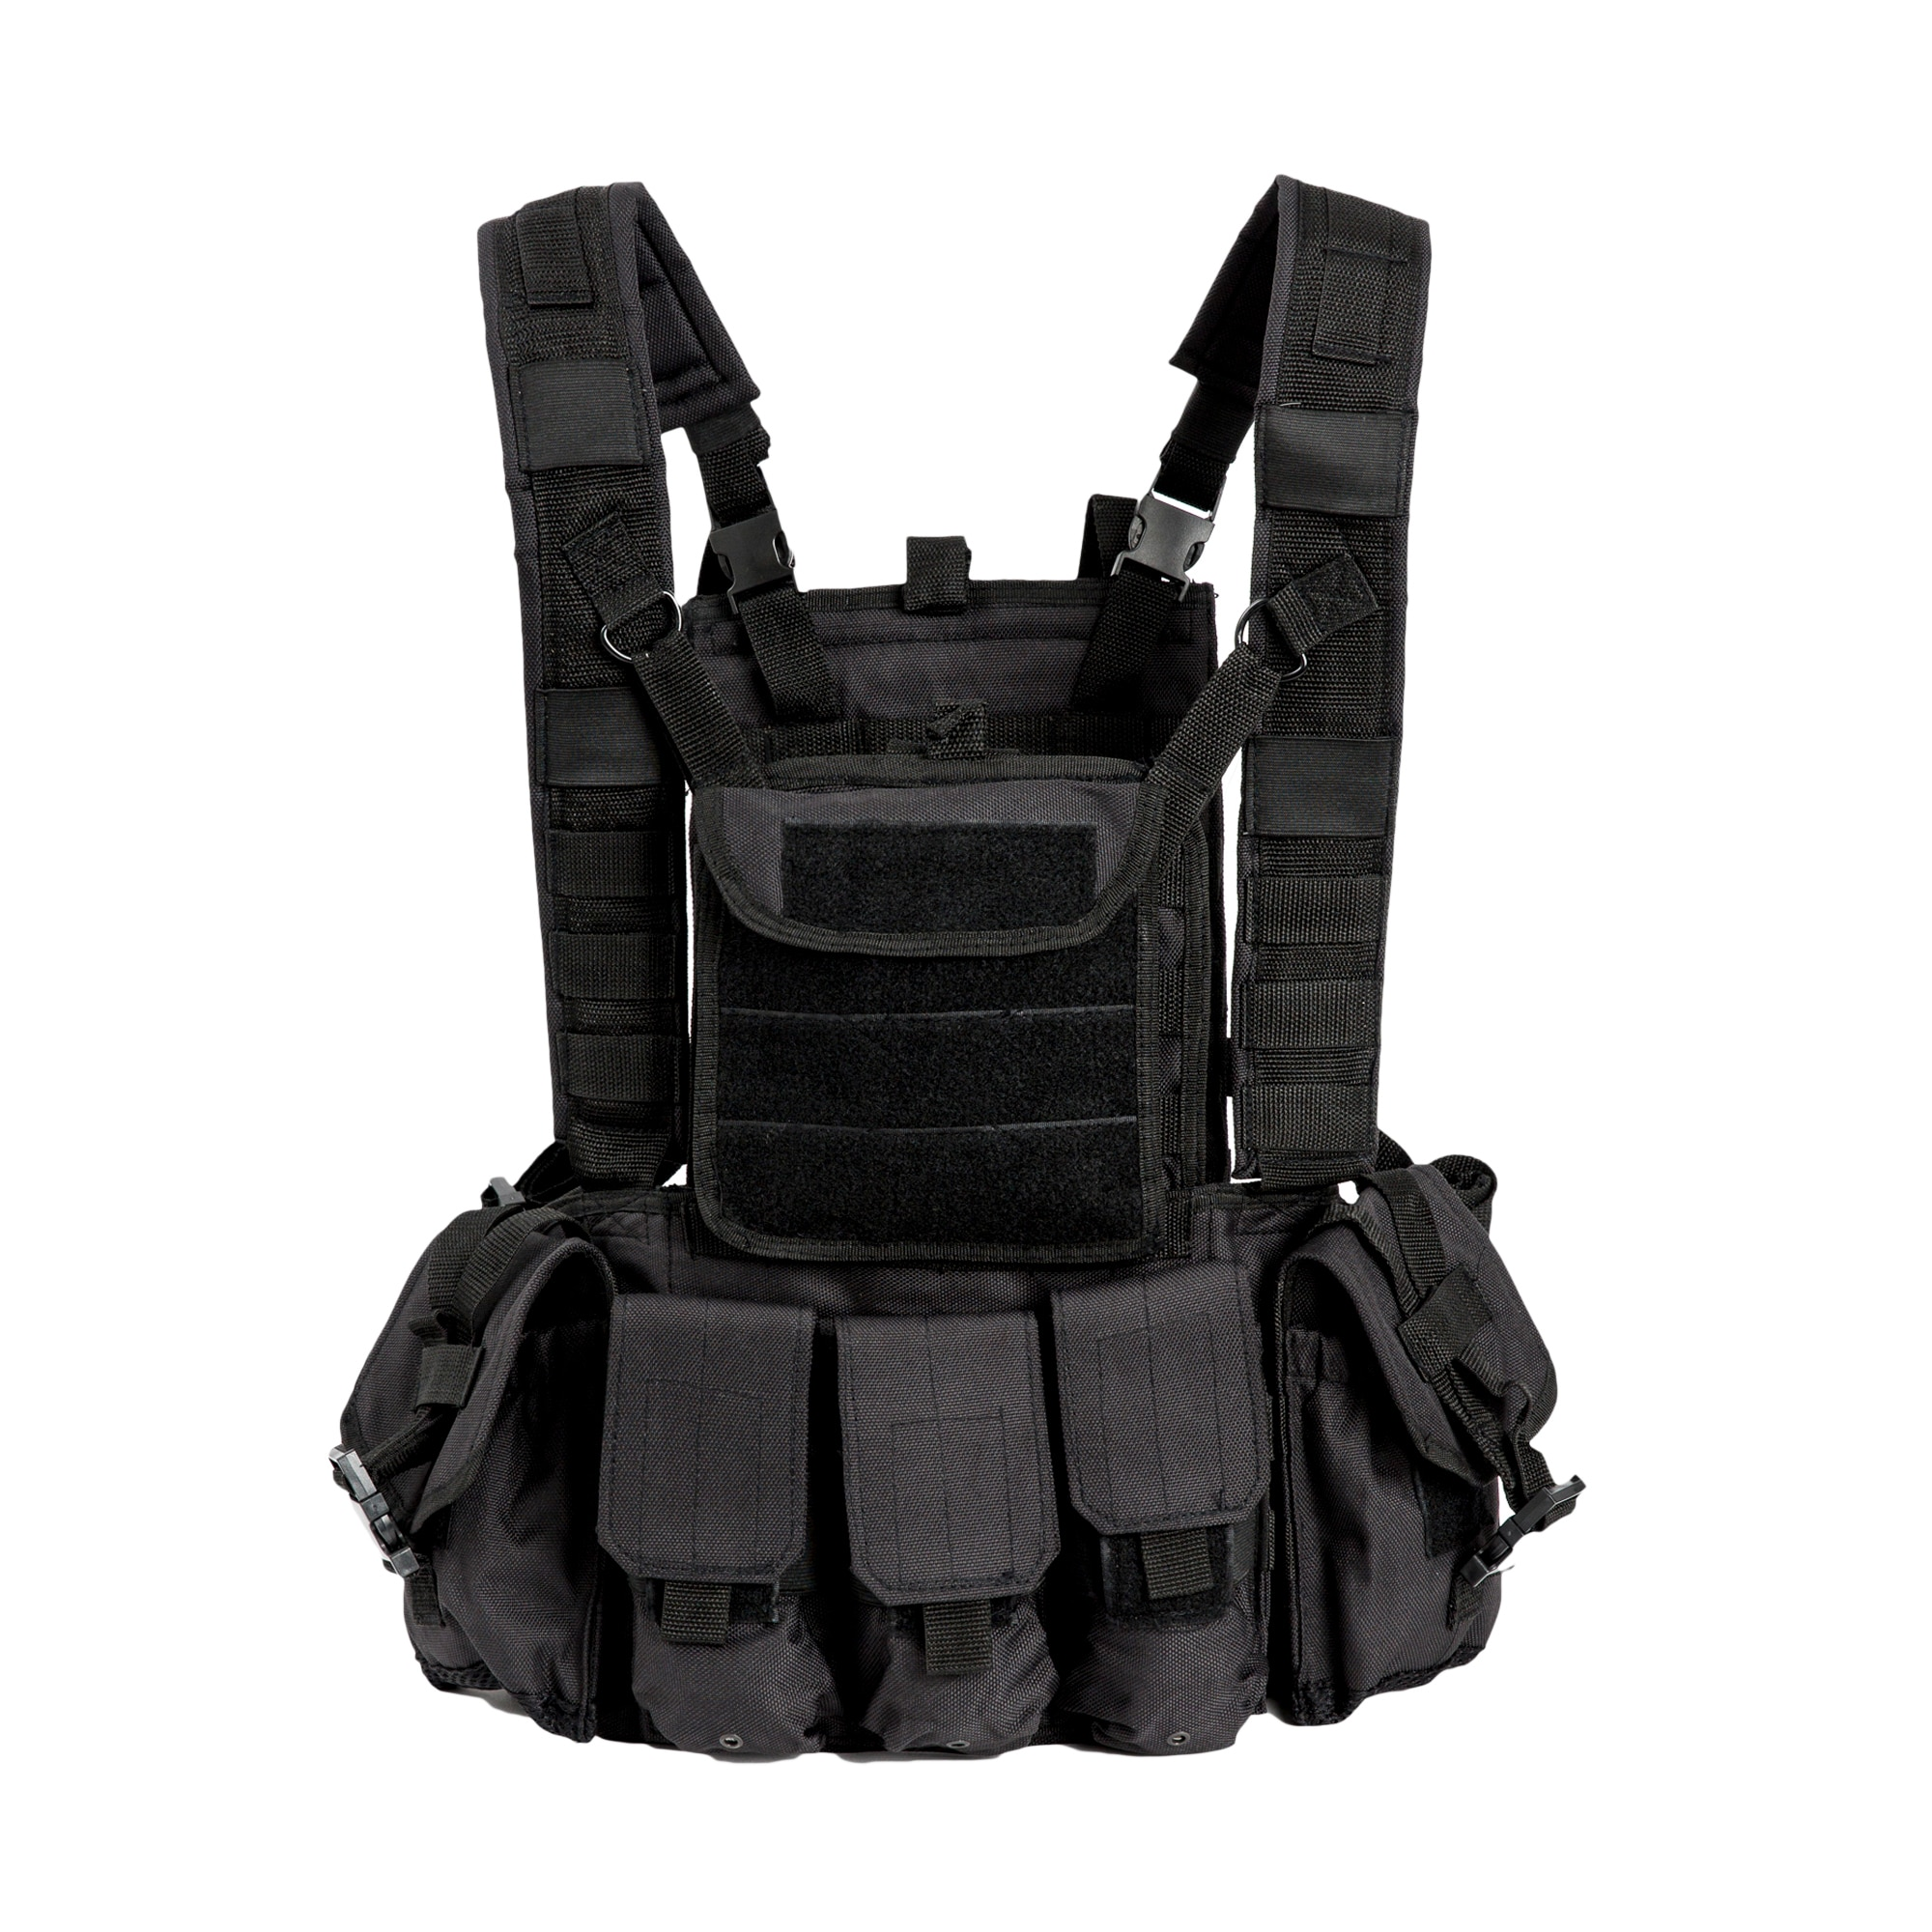 Akmax Military Combat Assault Vest Black 600D Polyester Webbing Belts Chest Jacket With 6 x Pouches